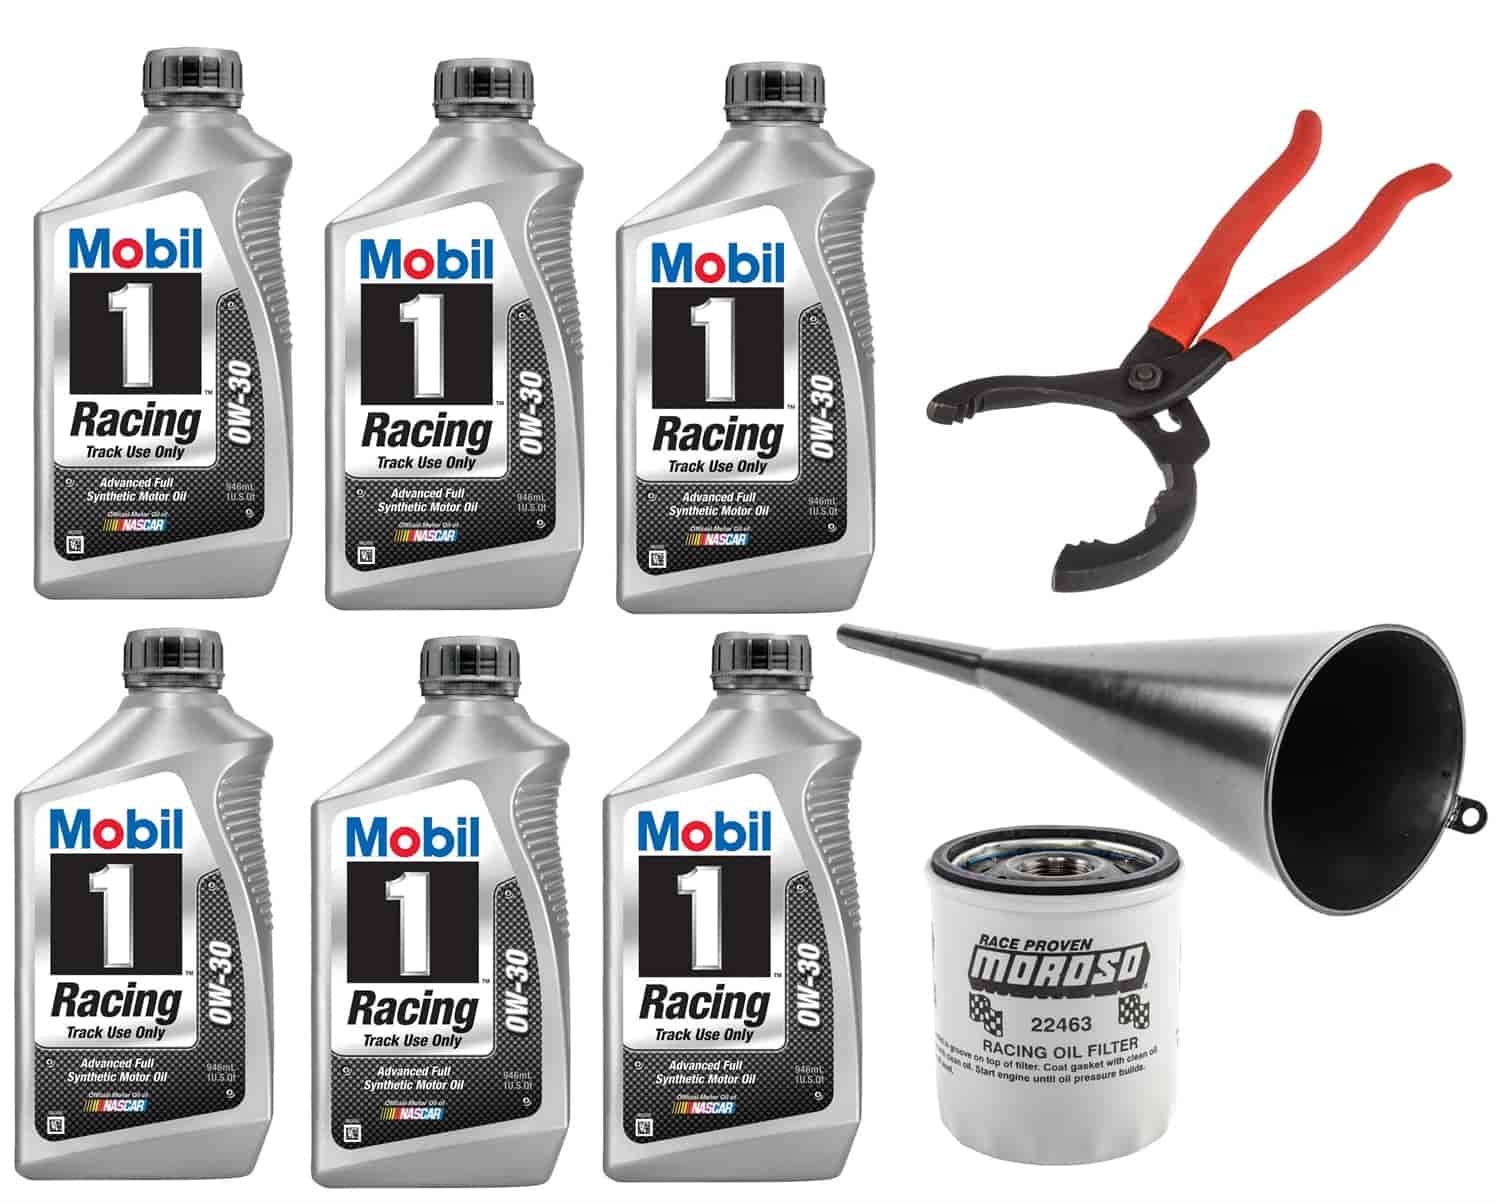 Mobil 1 Oil Change >> Mobil 1 Racing Oil Change Kit 2007 Up Gm Ls Platform 0w30